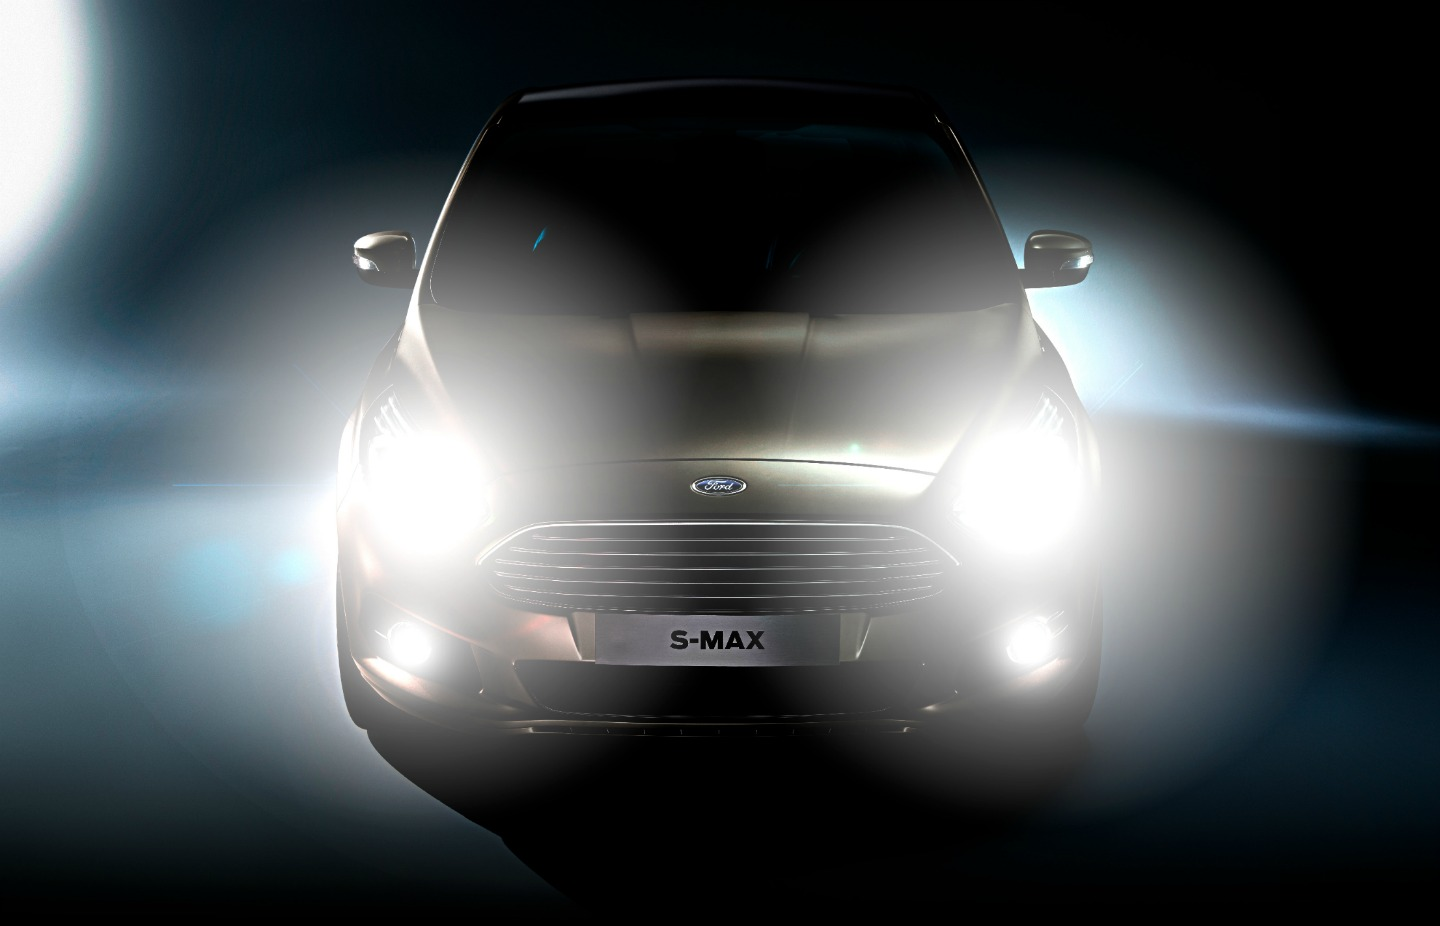 ford-s-max-luces-largas-que-no-deslumbran